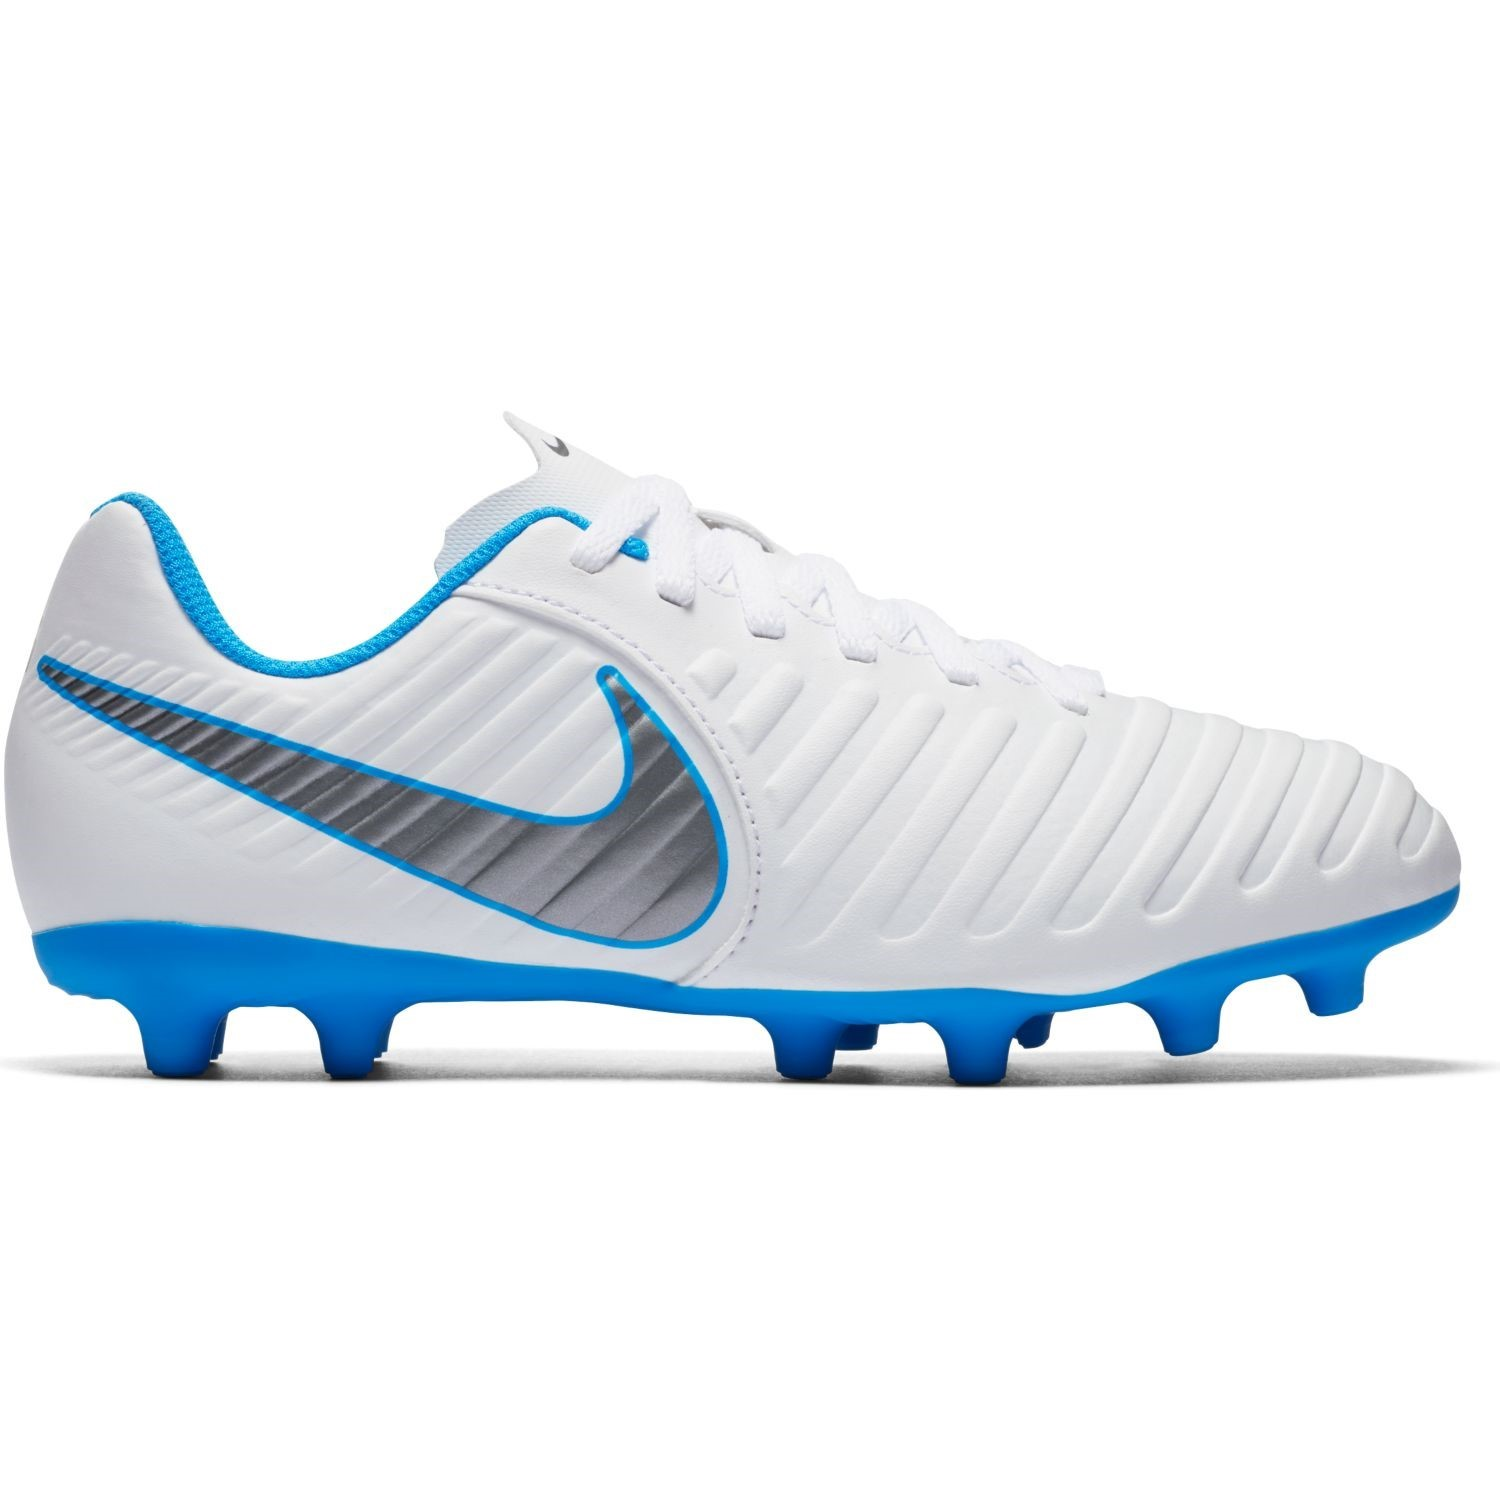 62a3681a1 Nike Jr Tiempo Legend VII Club FG - Kids Football Boots - White Metallic